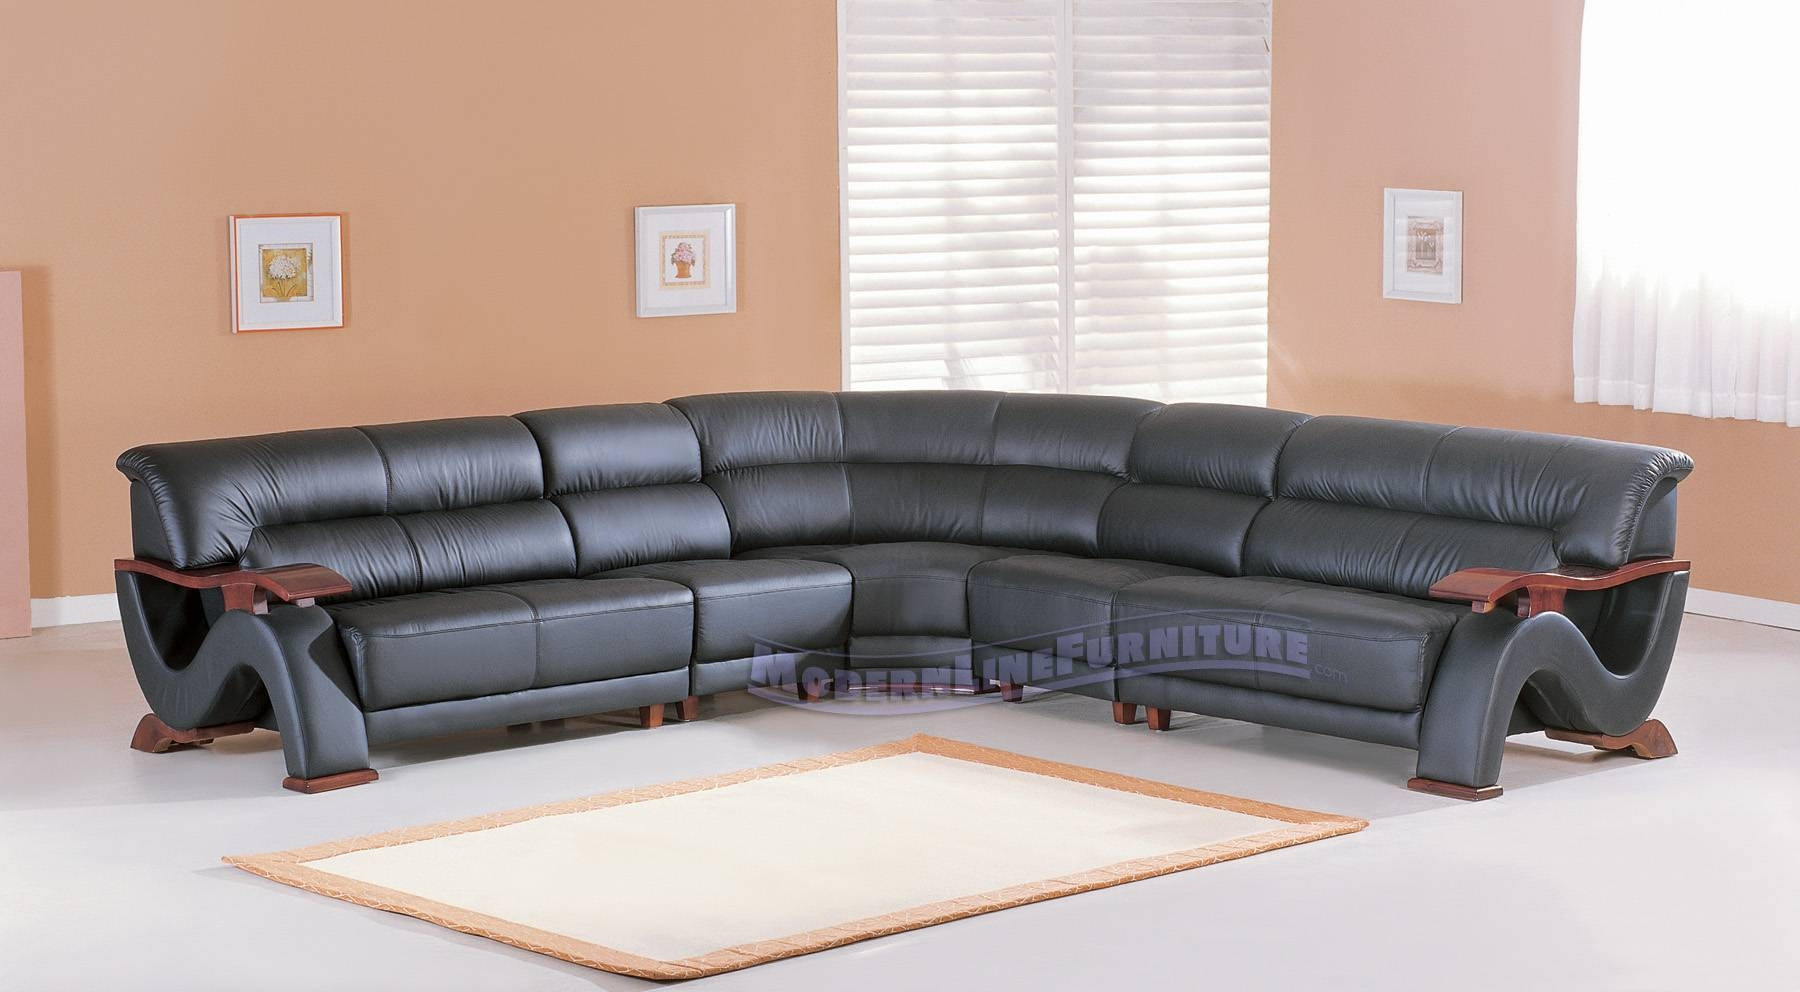 Modern Line Furniture – Commercial Furniture – Custom Made Pertaining To Contemporary Black Leather Sofas (View 19 of 30)